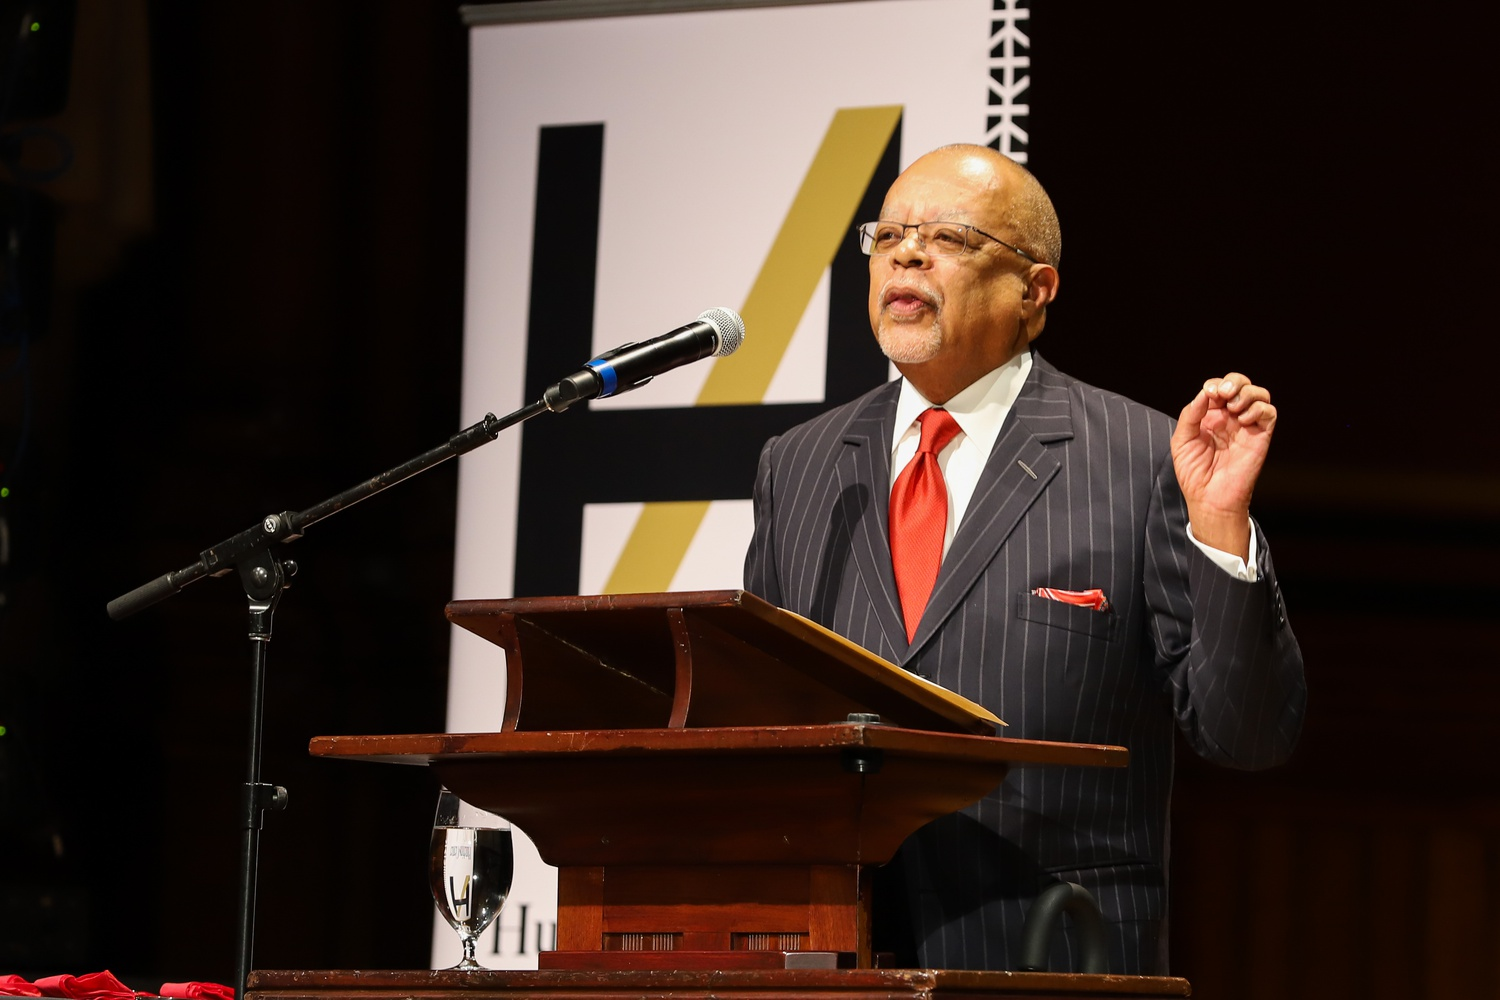 University Professor Henry Louis Gates, Jr. speaks at the W.E.B. Du Bois Award Ceremony in 2019. The American Academy of Arts and Sciences awarded Gates its Don M. Randel Award for Humanistic Studies on Wednesday.